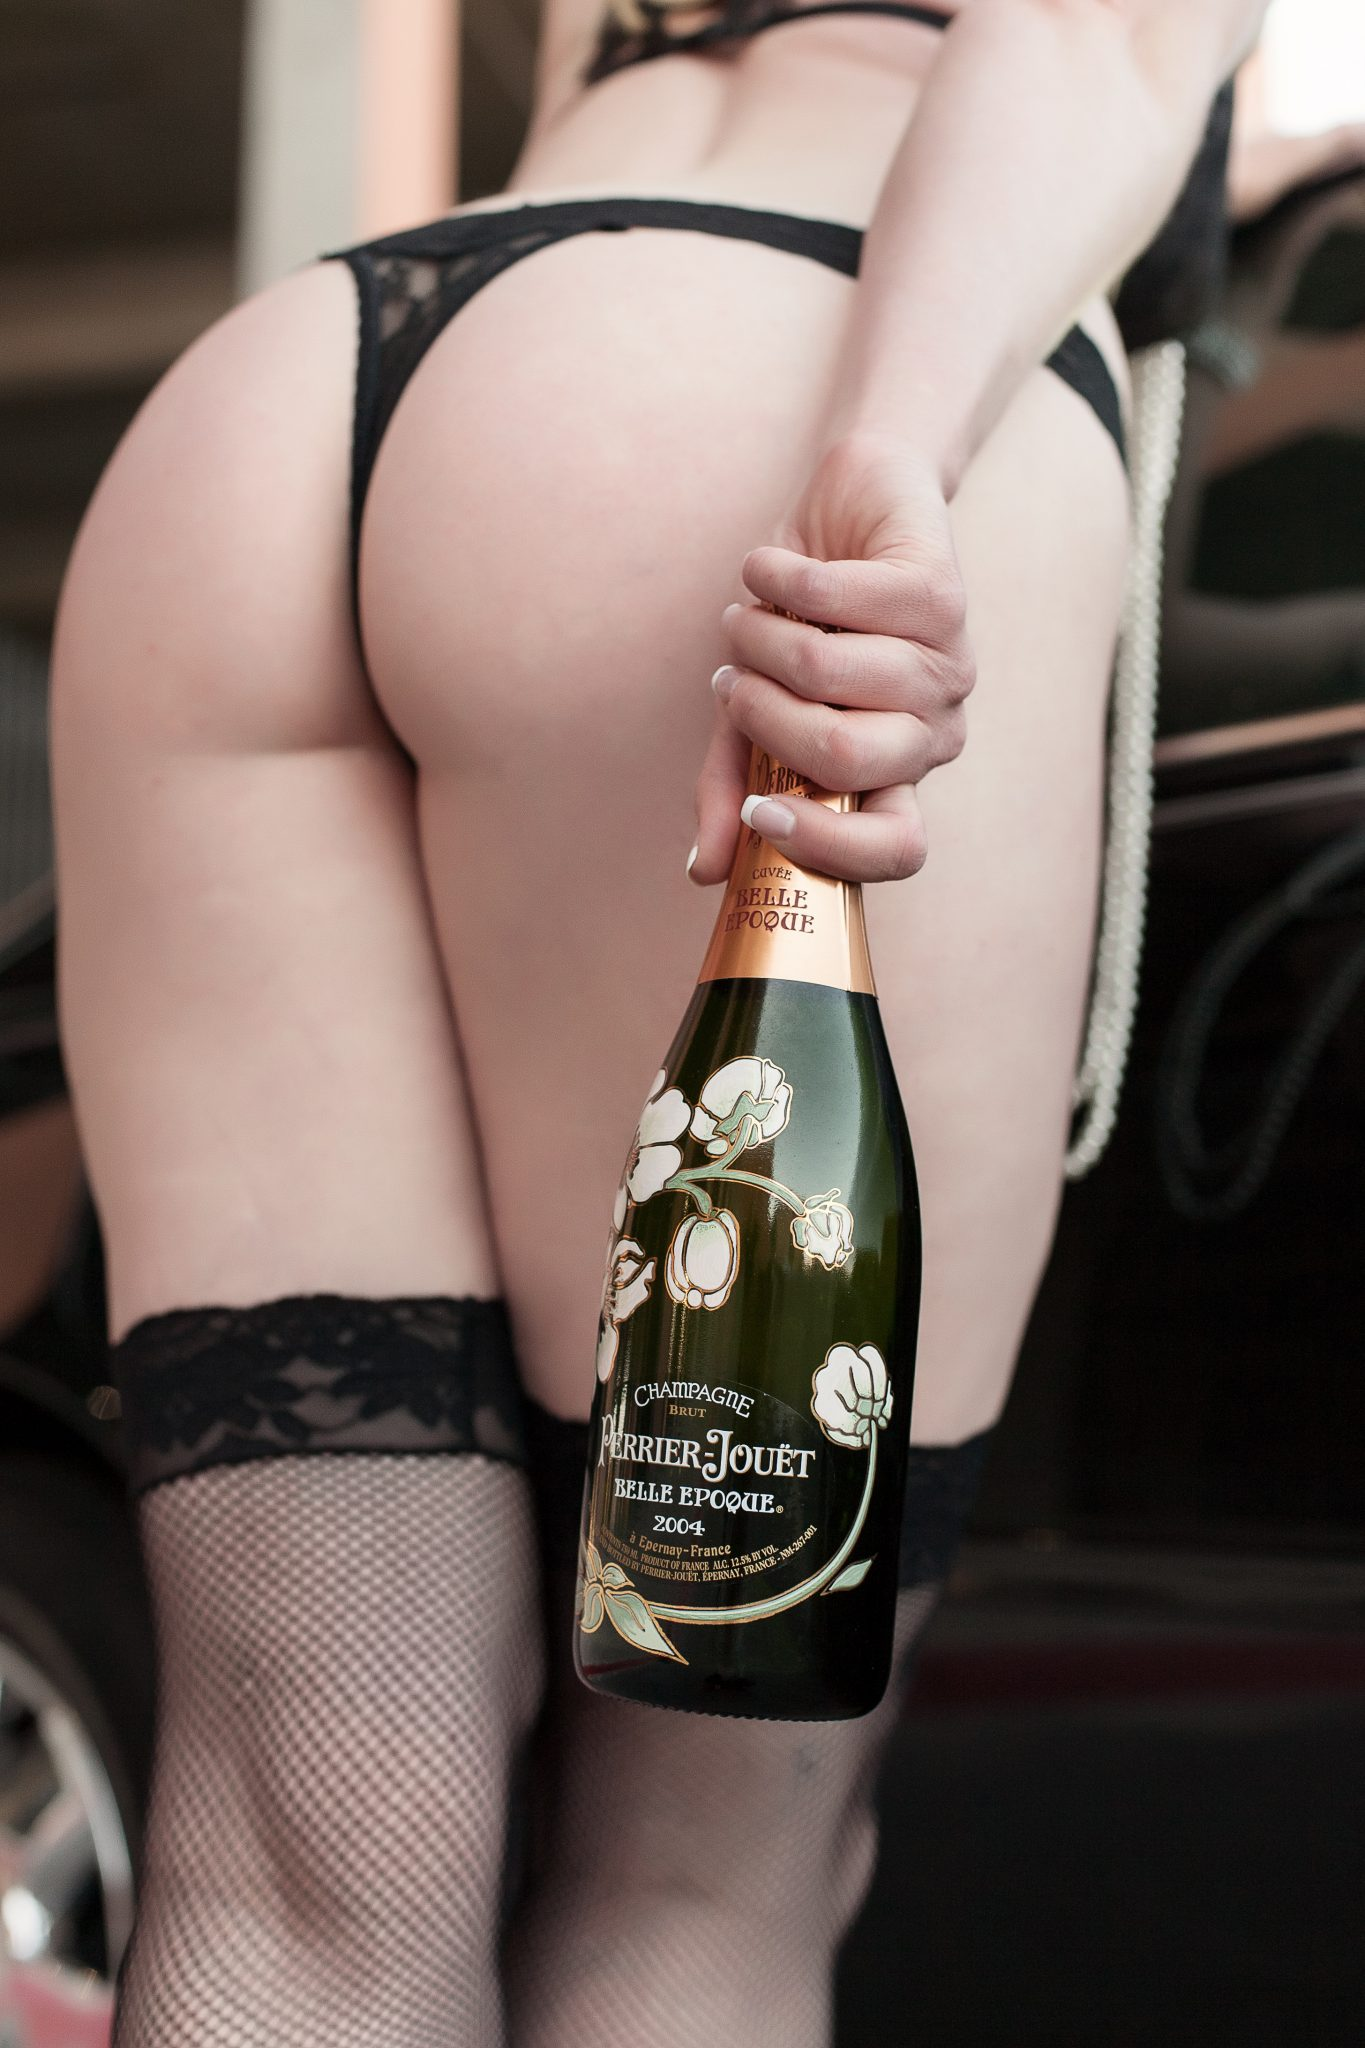 Maison Perrier-Jouët featured in boudoir photography shoot.